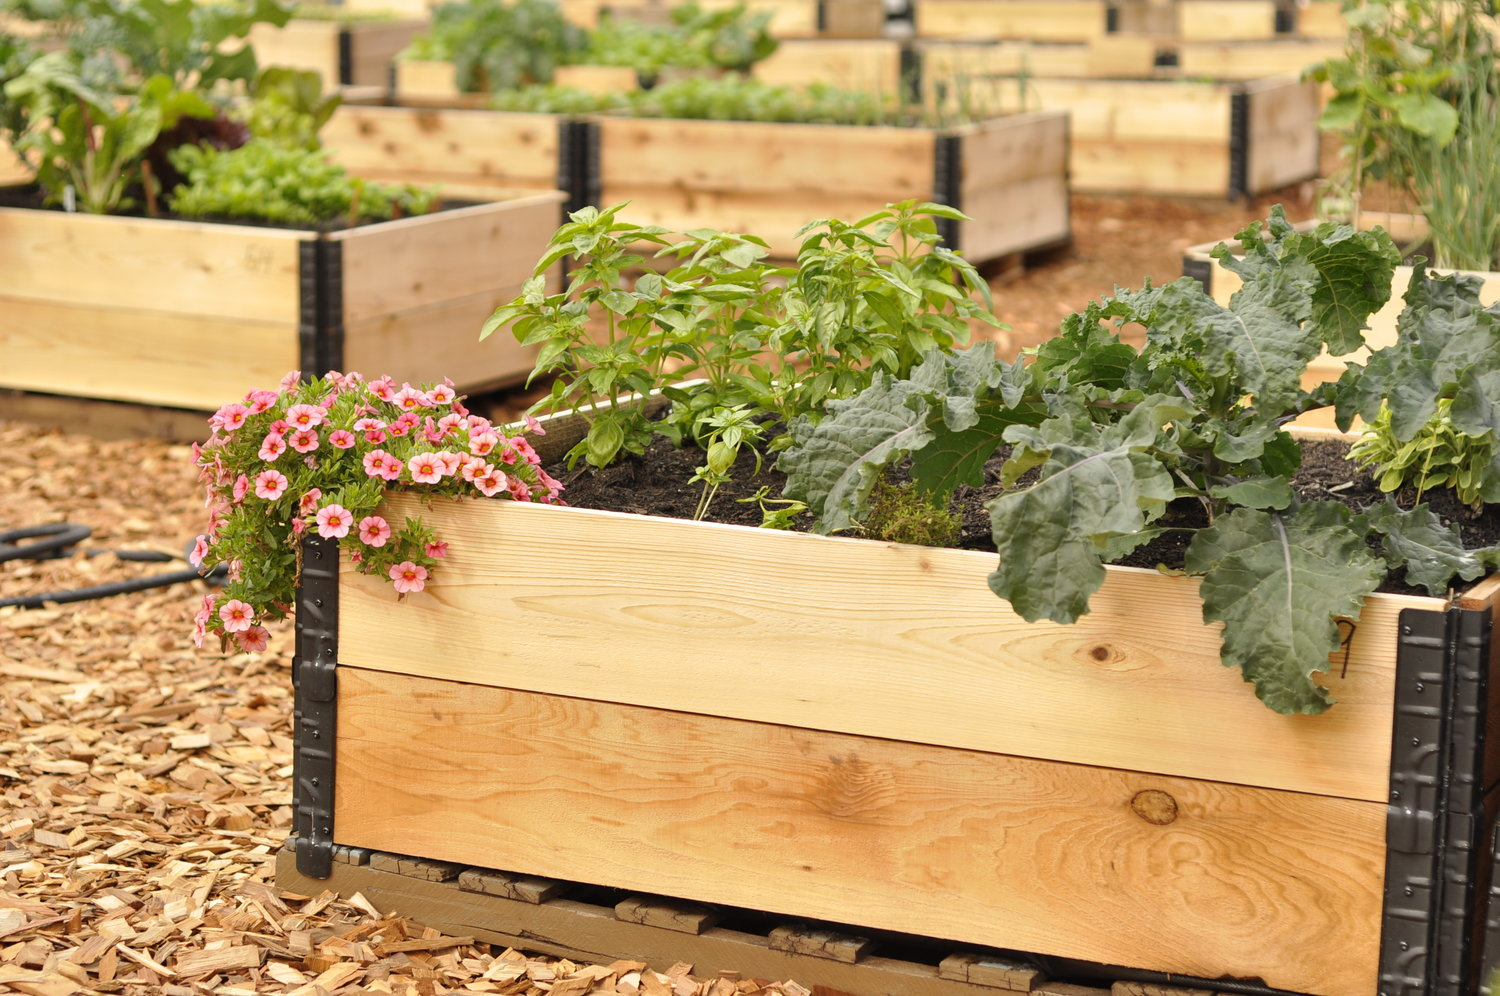 Community_Garden_Builders_Pallet_Raised_Garden_Bed_4x4.jpeg